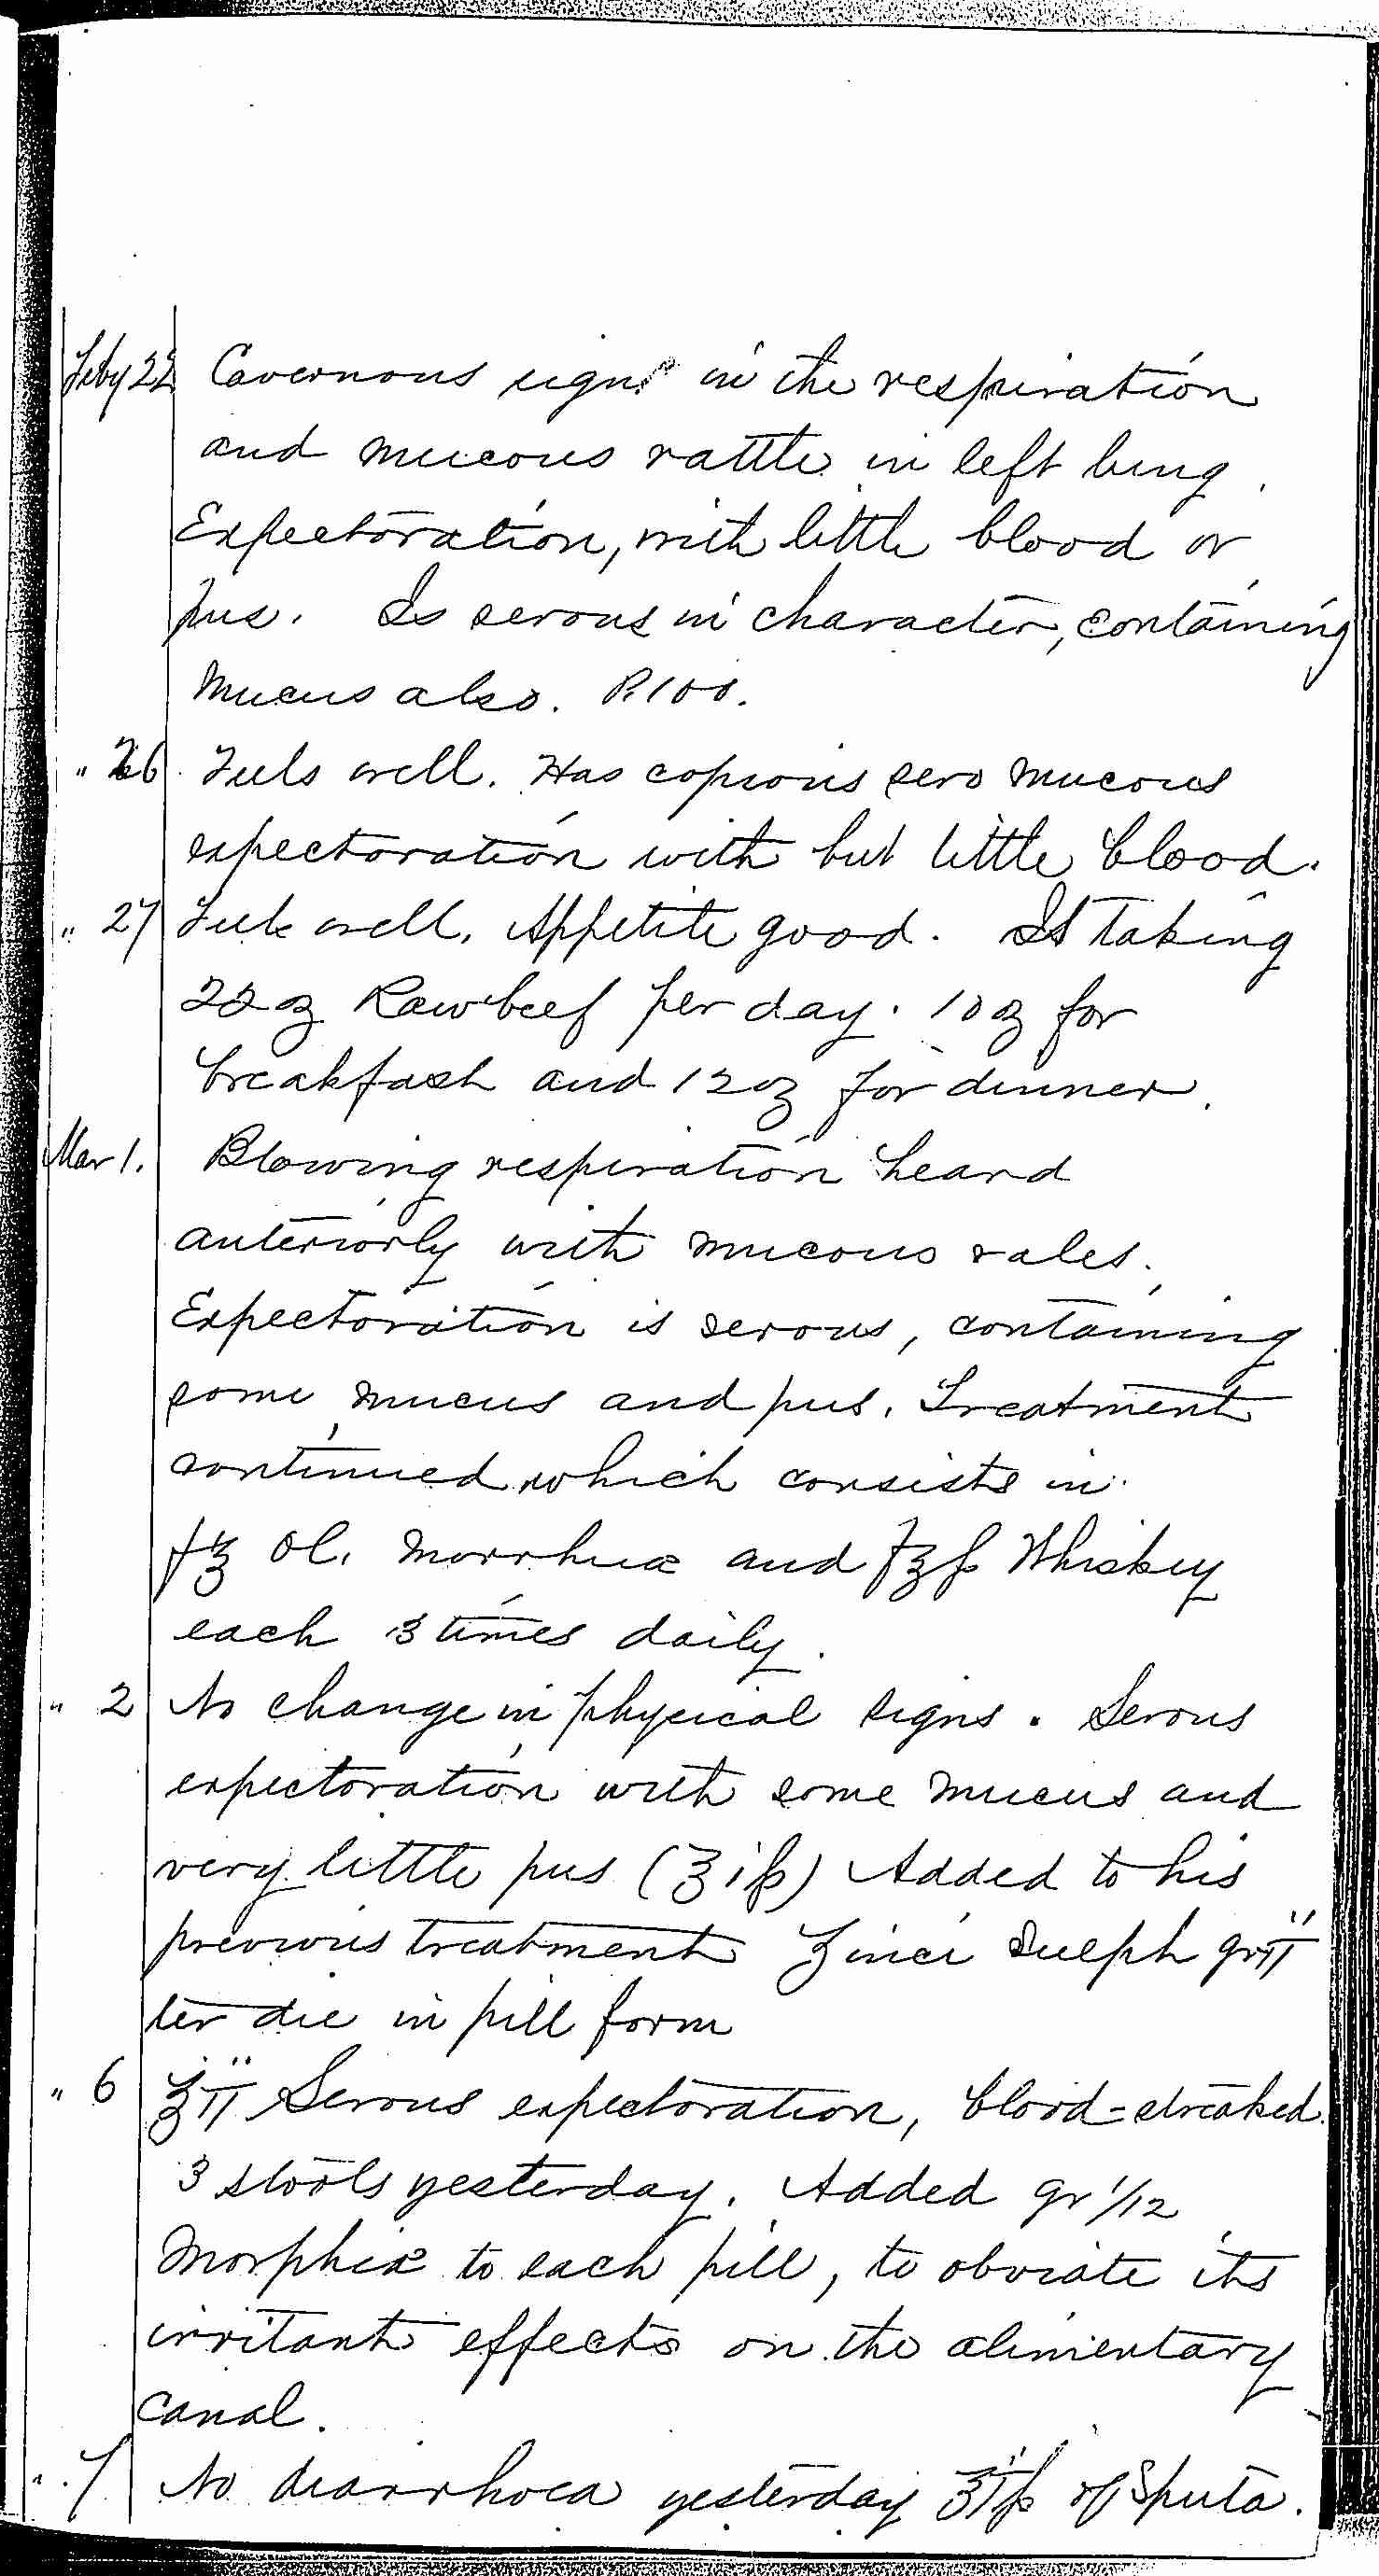 Entry for Bernard Drury (page 25 of 31) in the log Hospital Tickets and Case Papers - Naval Hospital - Washington, D.C. - 1868-69